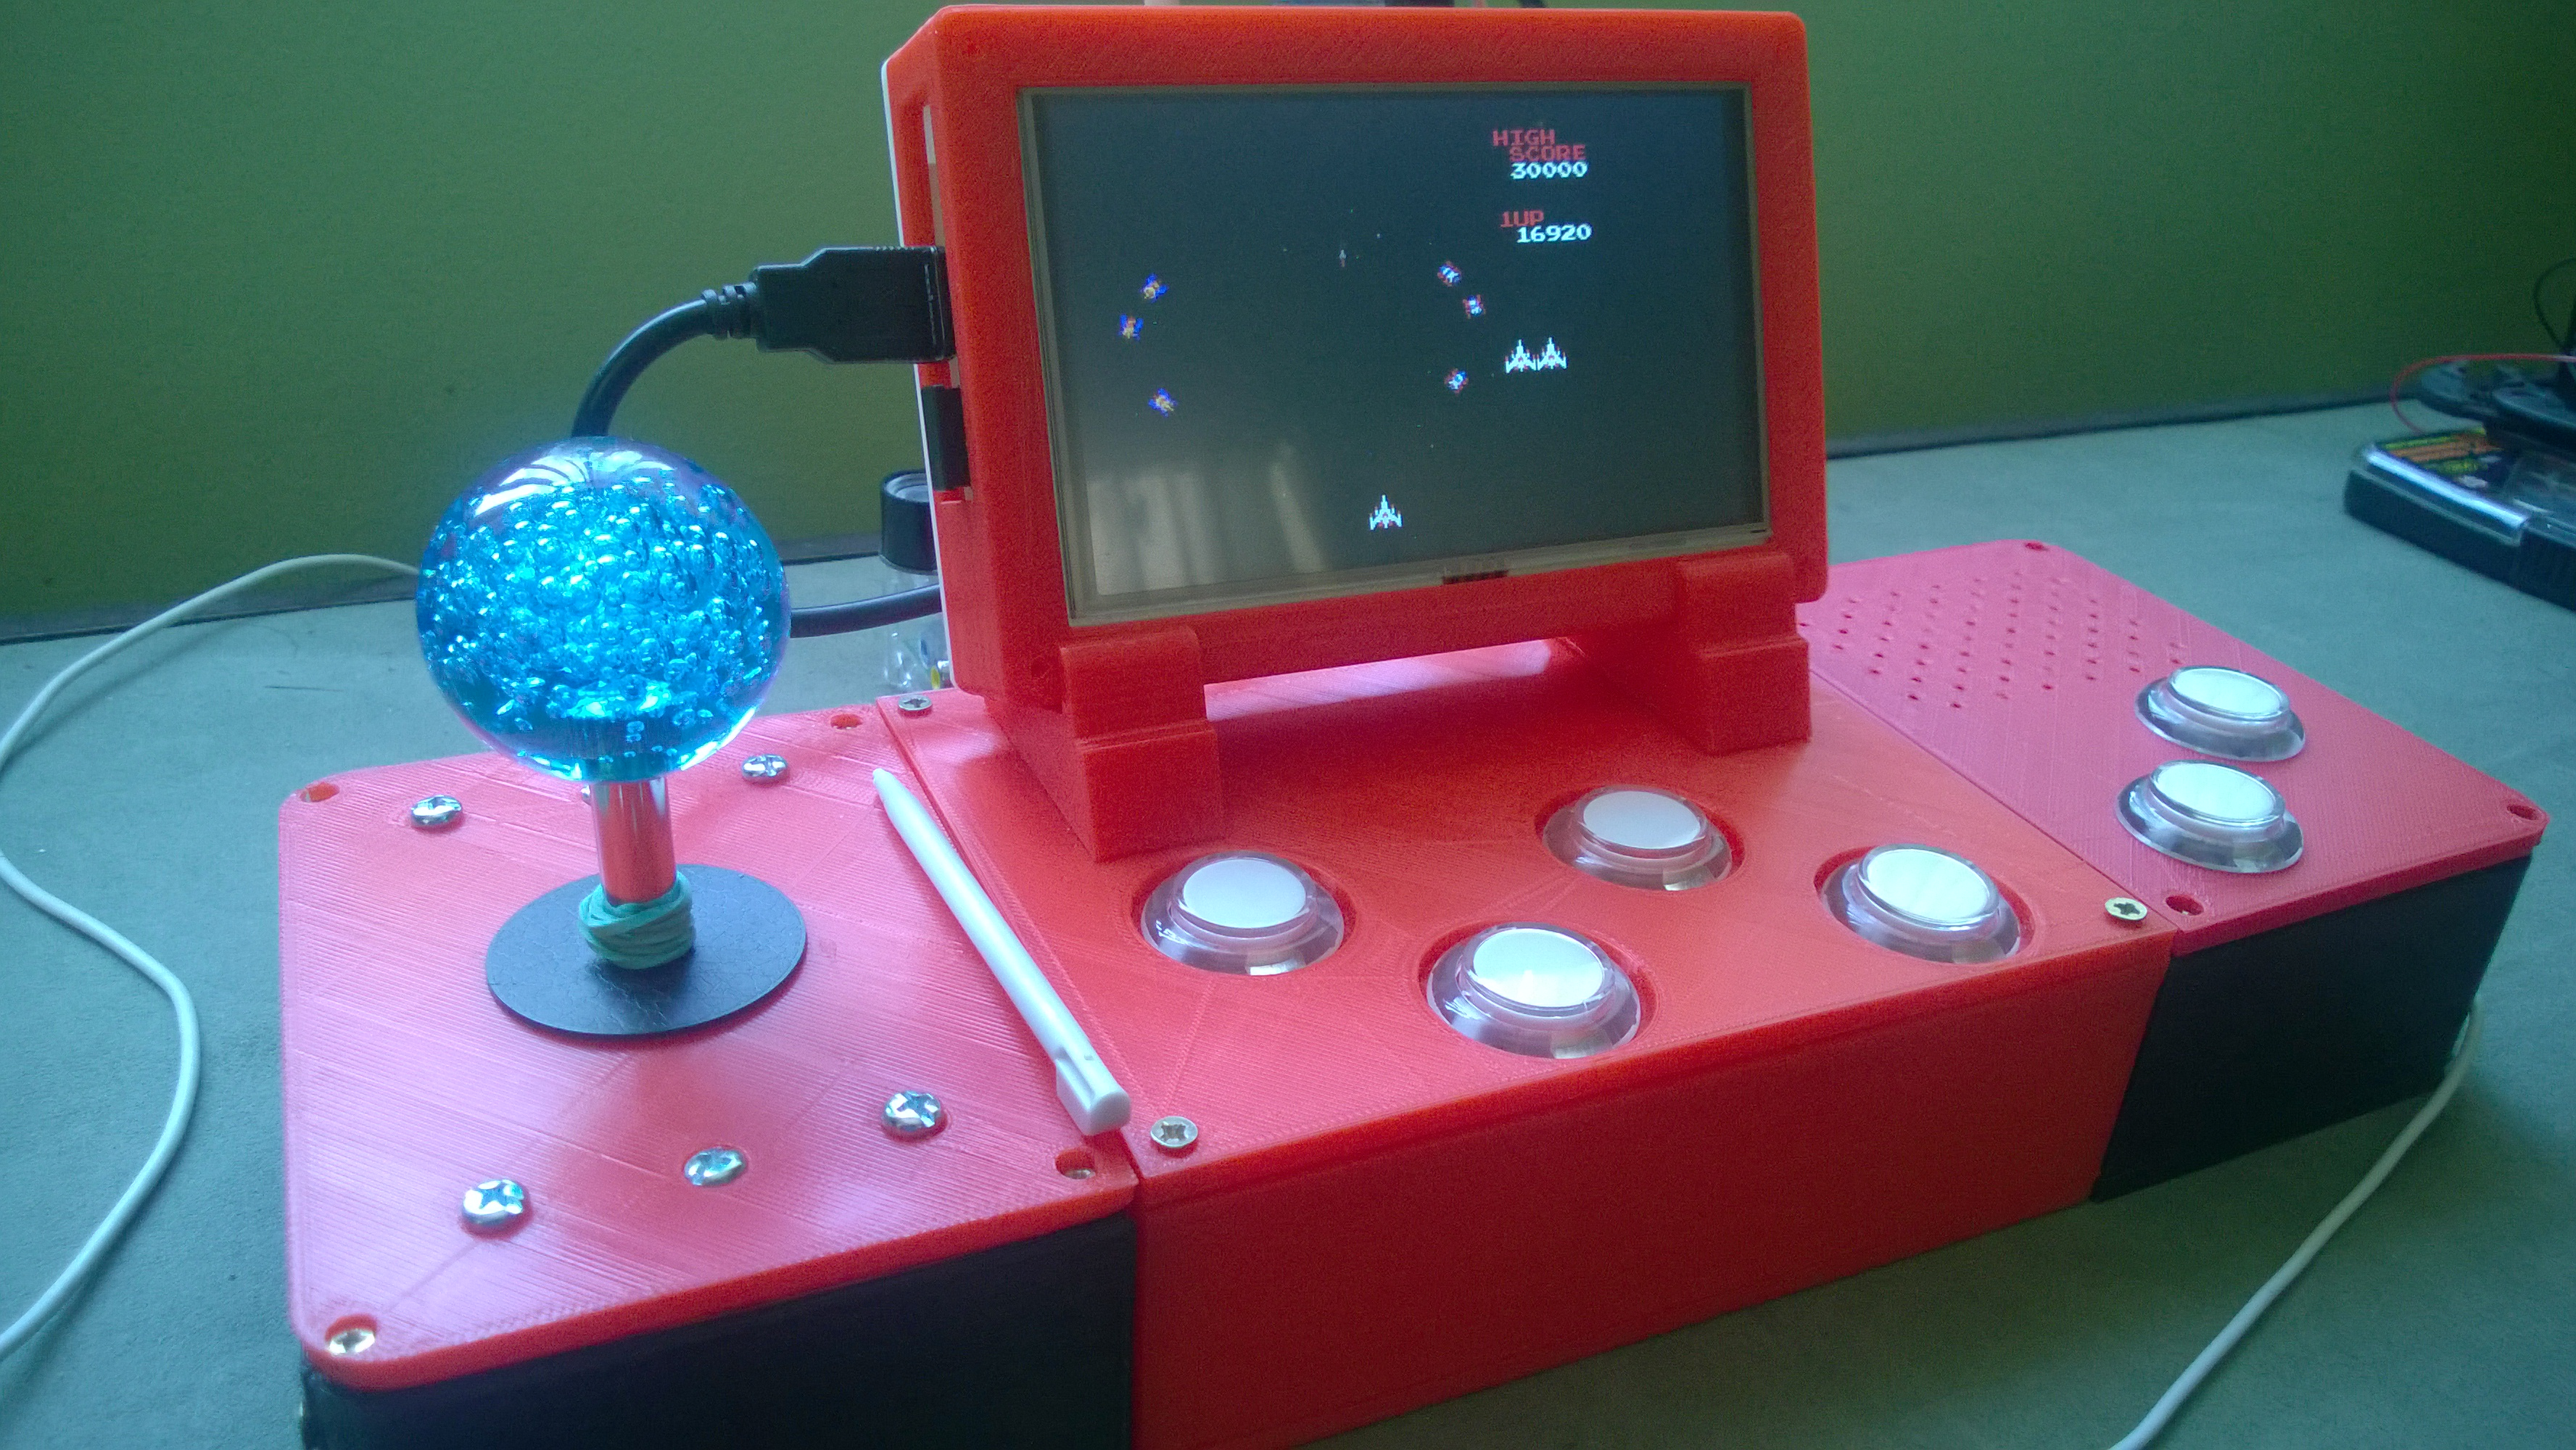 Picture of An Unconventional 3D Printed Retropie Arcade - Part 2 of 2